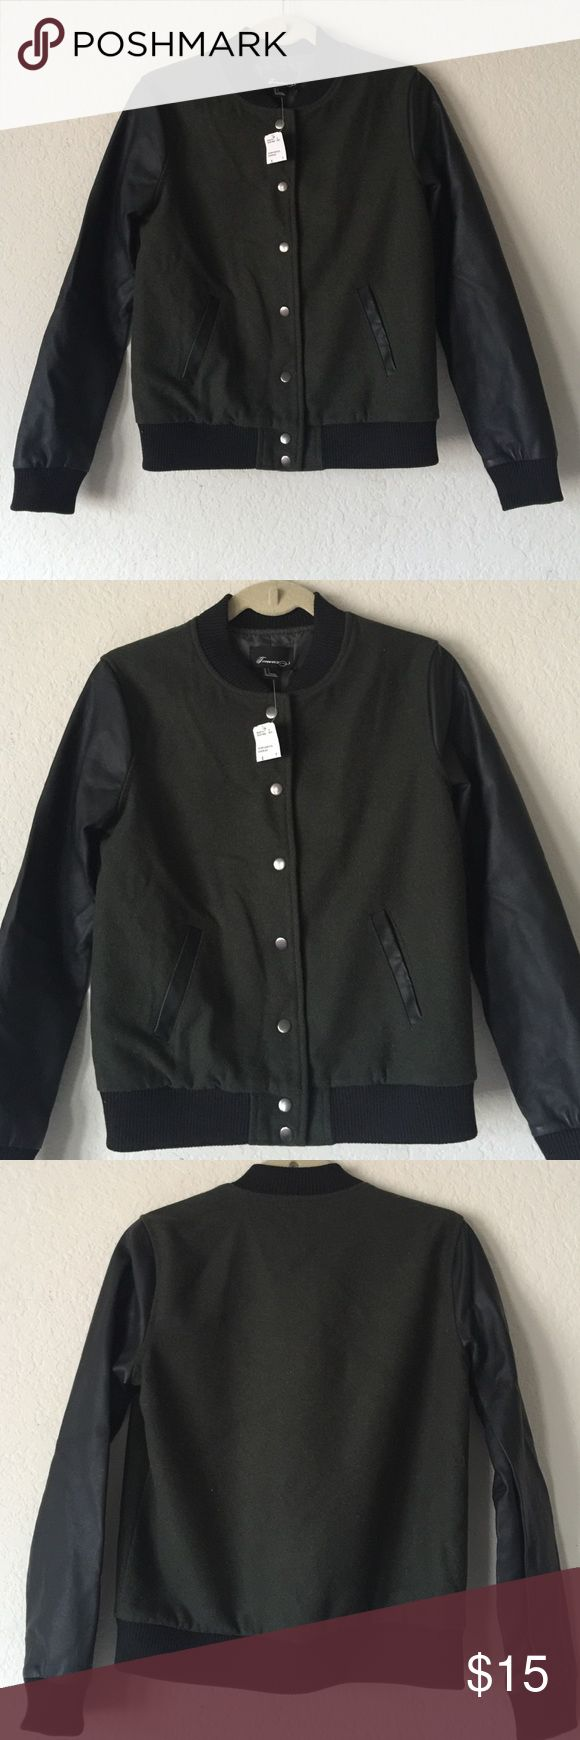 Olive & Black Leather Bomber Jacket Brand New, With Tags. Cute Forever 21 bomber jacket with a deep olive colored body and faux black leather sleeves. Forever 21 Jackets & Coats